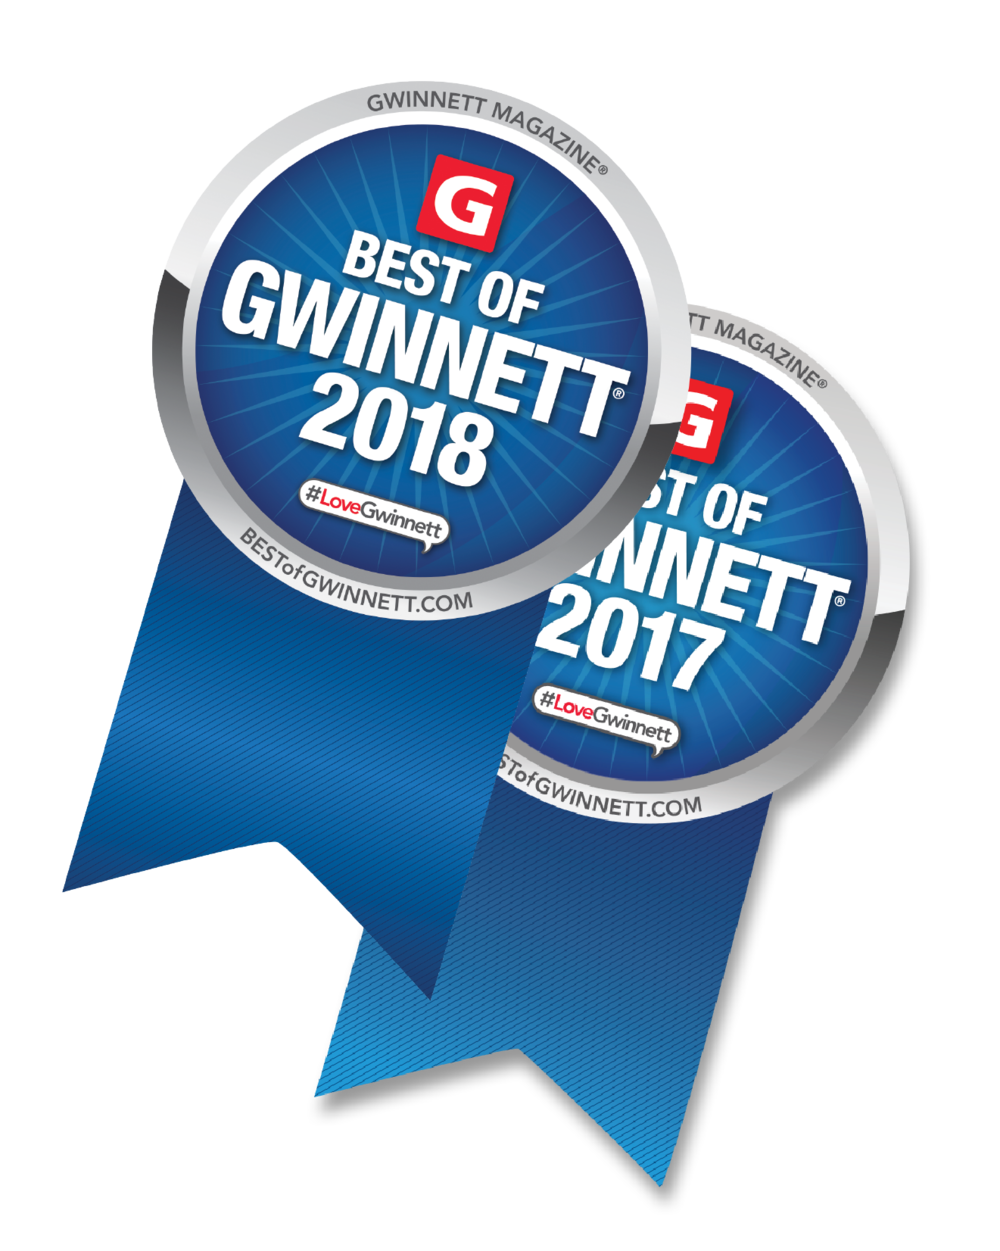 We started a winning streak! - Thank you to all of our dedicated clients and friends who helped by casting your votes! The Savvy Peach has been voted Best of Gwinnett for 2 years in a row - 2017 & 2018!